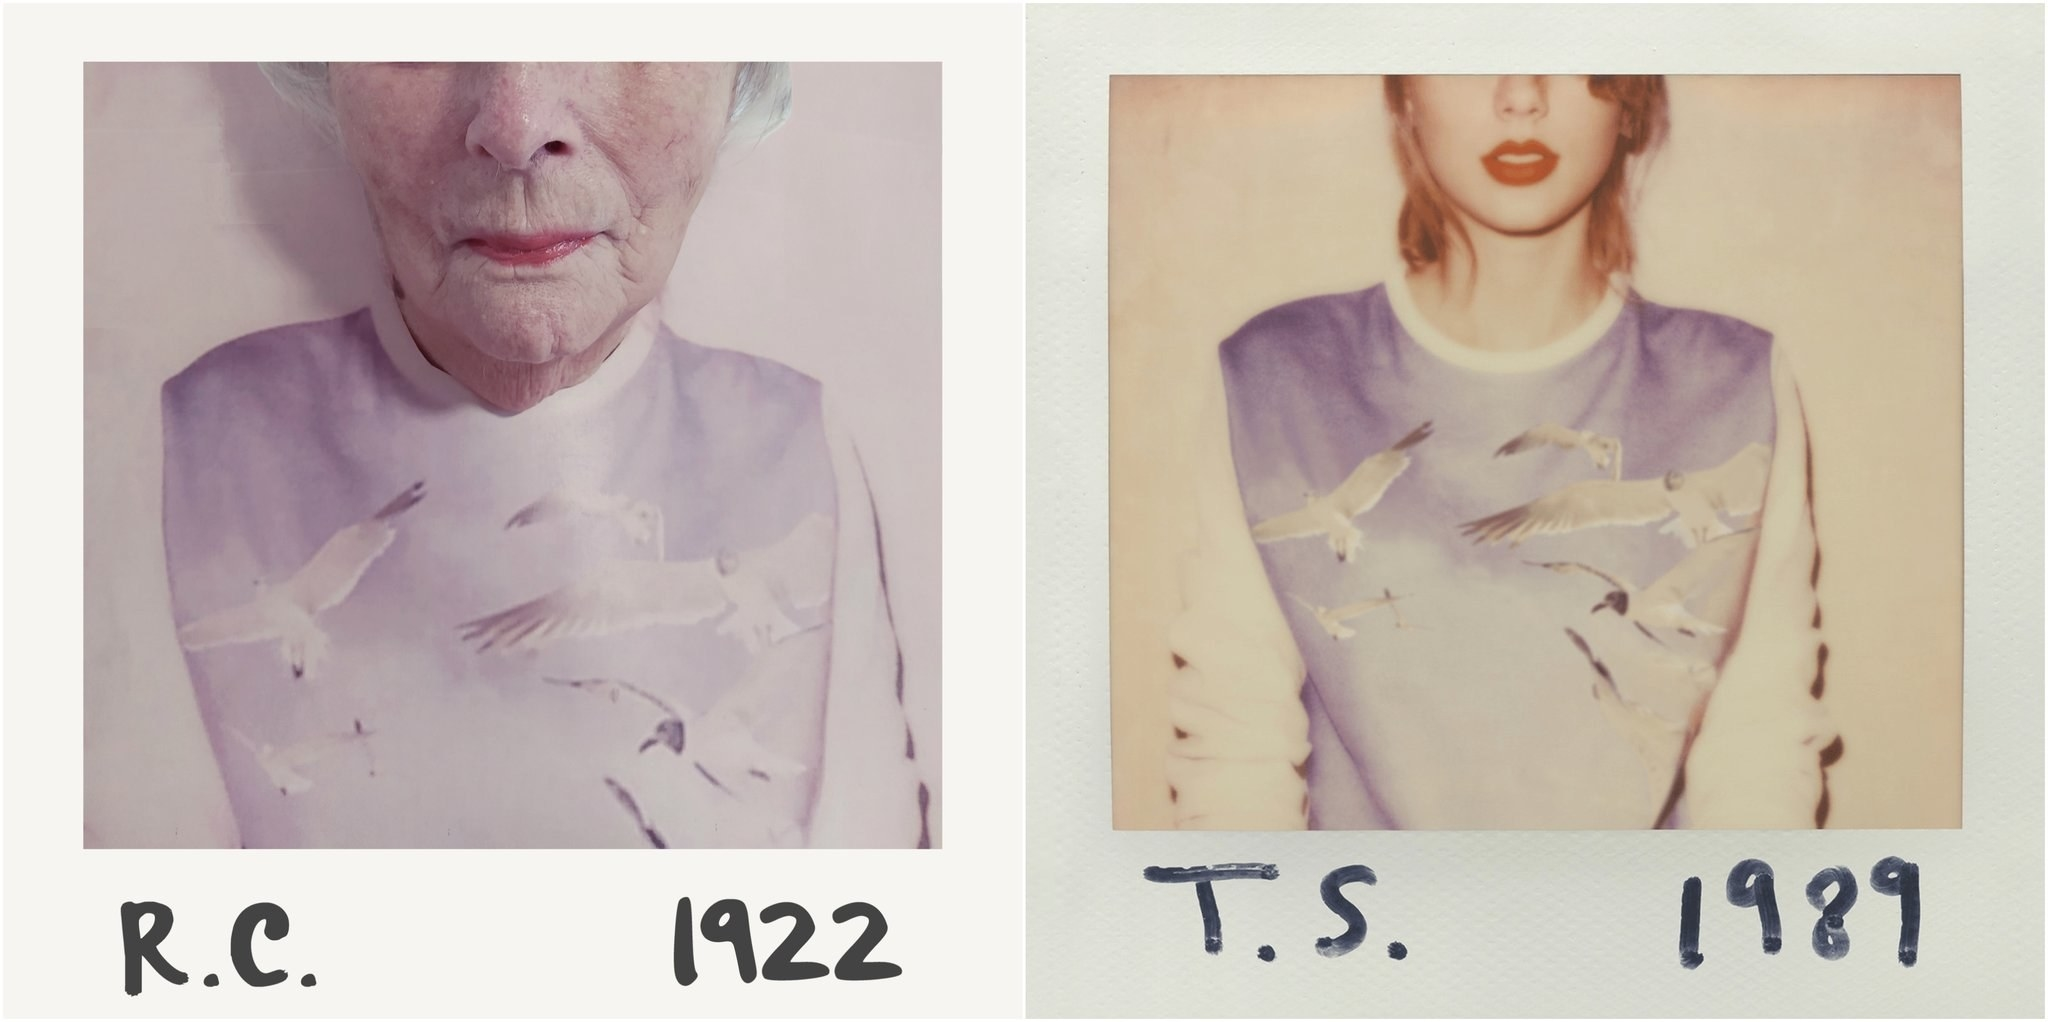 An elderly woman recreating Taylor Swift's 1989 album cover